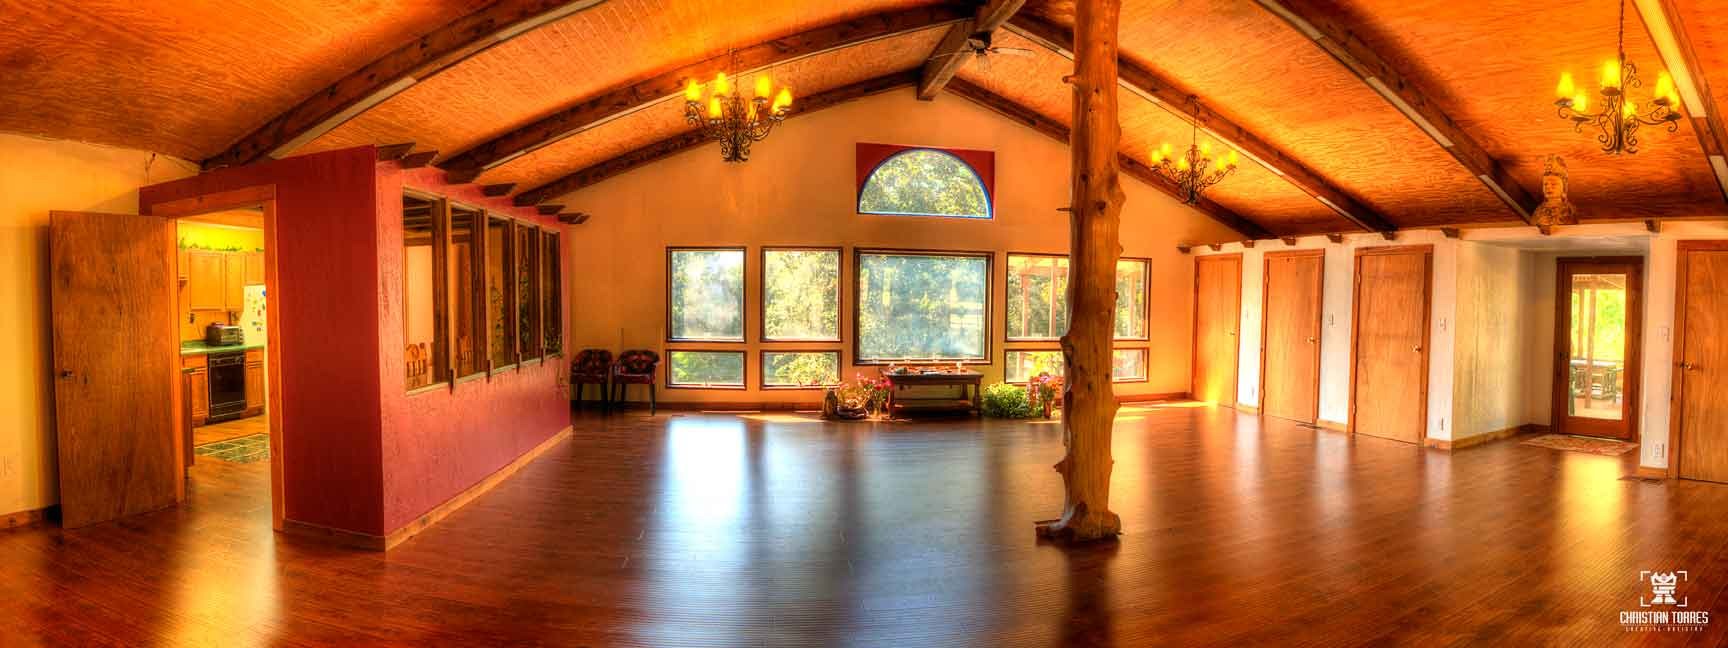 """The Great Room at the Samadhi Retreat provides """"indoor camping"""" on air mattresses during Silent Retreats"""